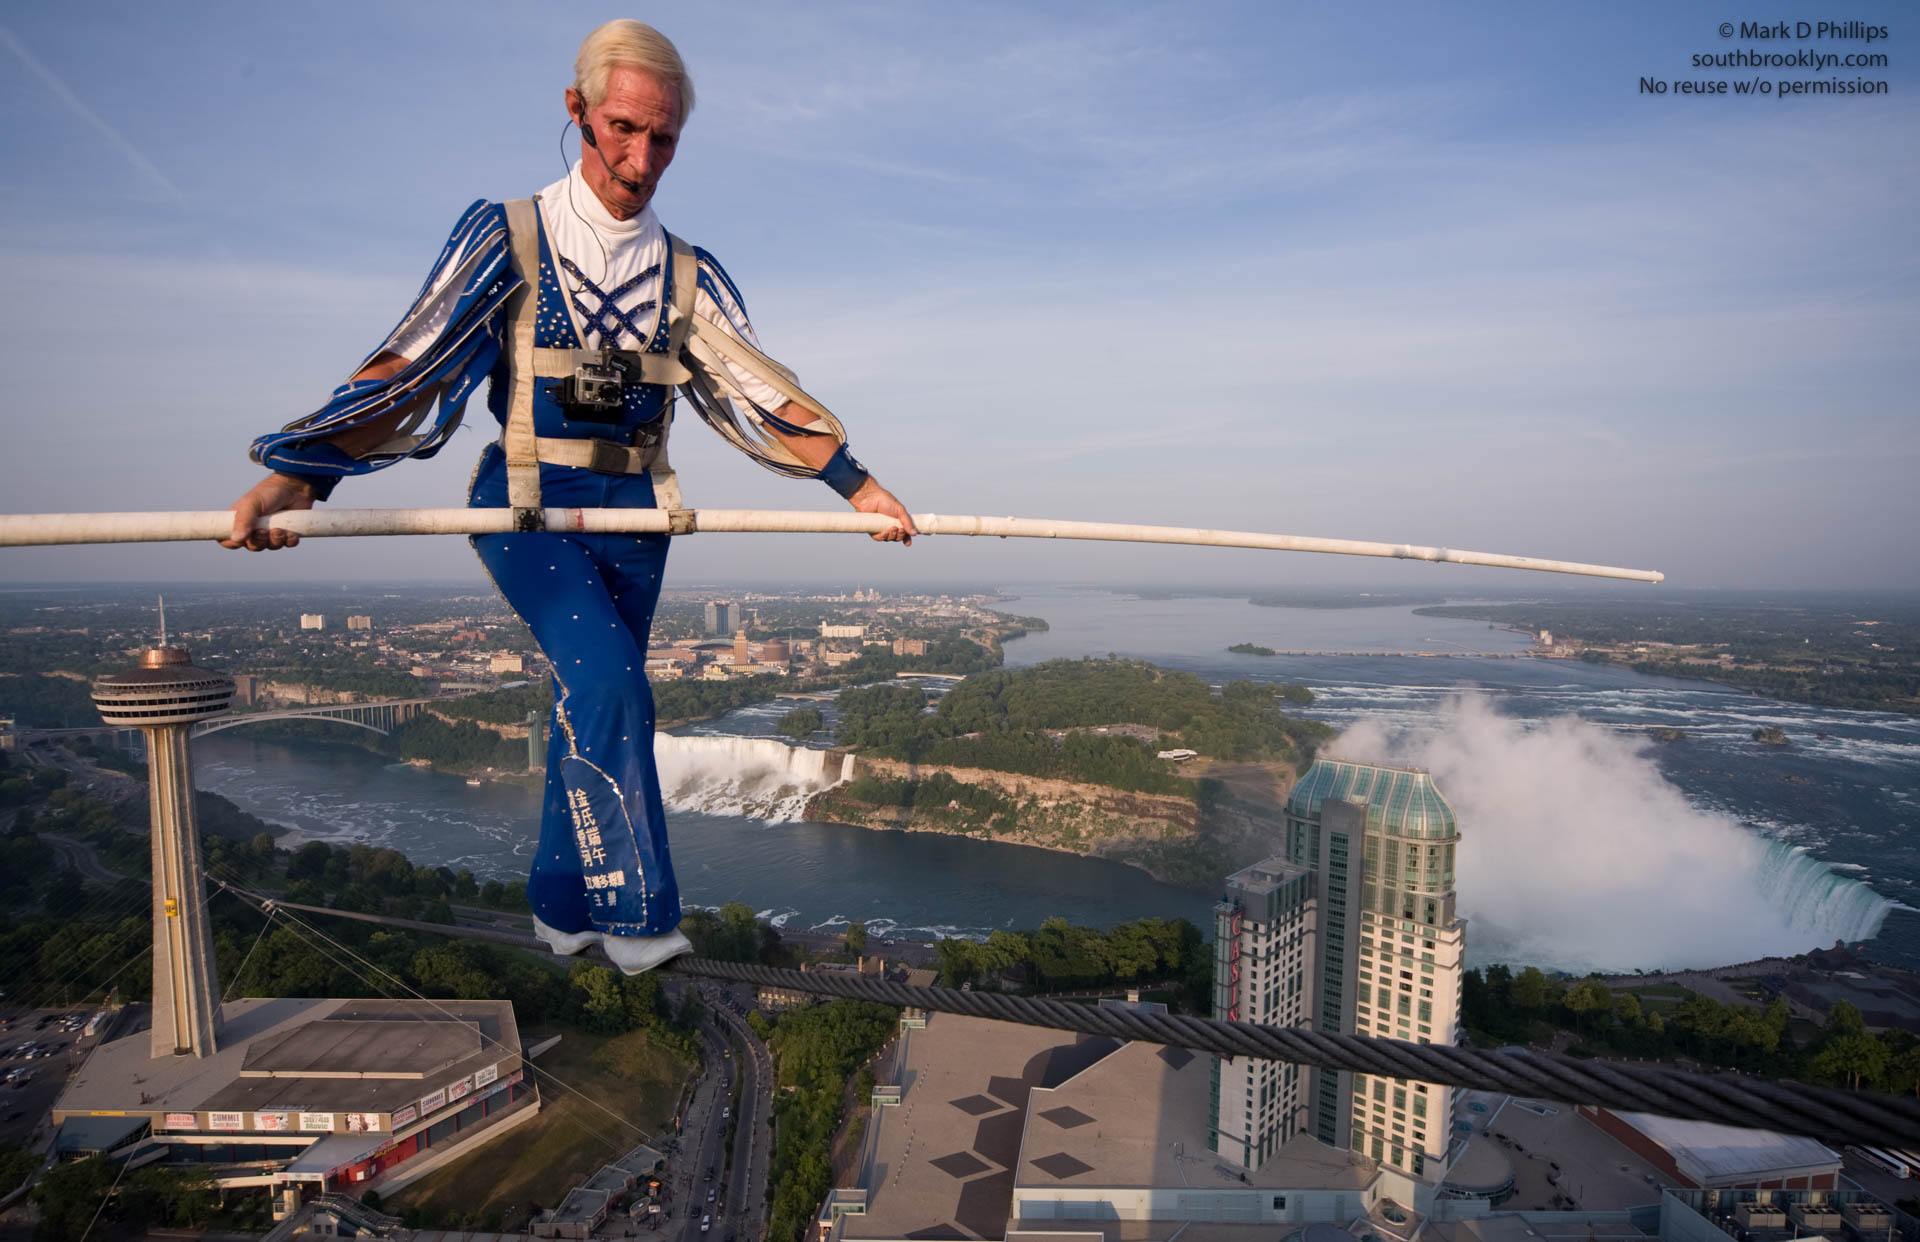 Jay Cochrane completes the first performance of Skywalk 2012, the Greatest Building to Building skywalk in North American history. Cochrane will grace the Niagara Falls skyline from the Skylon Tower (520 feet tall) to the top of the Hilton Hotel (581 feet tall) for the entire summer. At 1300 feet distance, he will cover approximately 20 miles on this wire in the 81 scheduled performances. ©Mark D Phillips